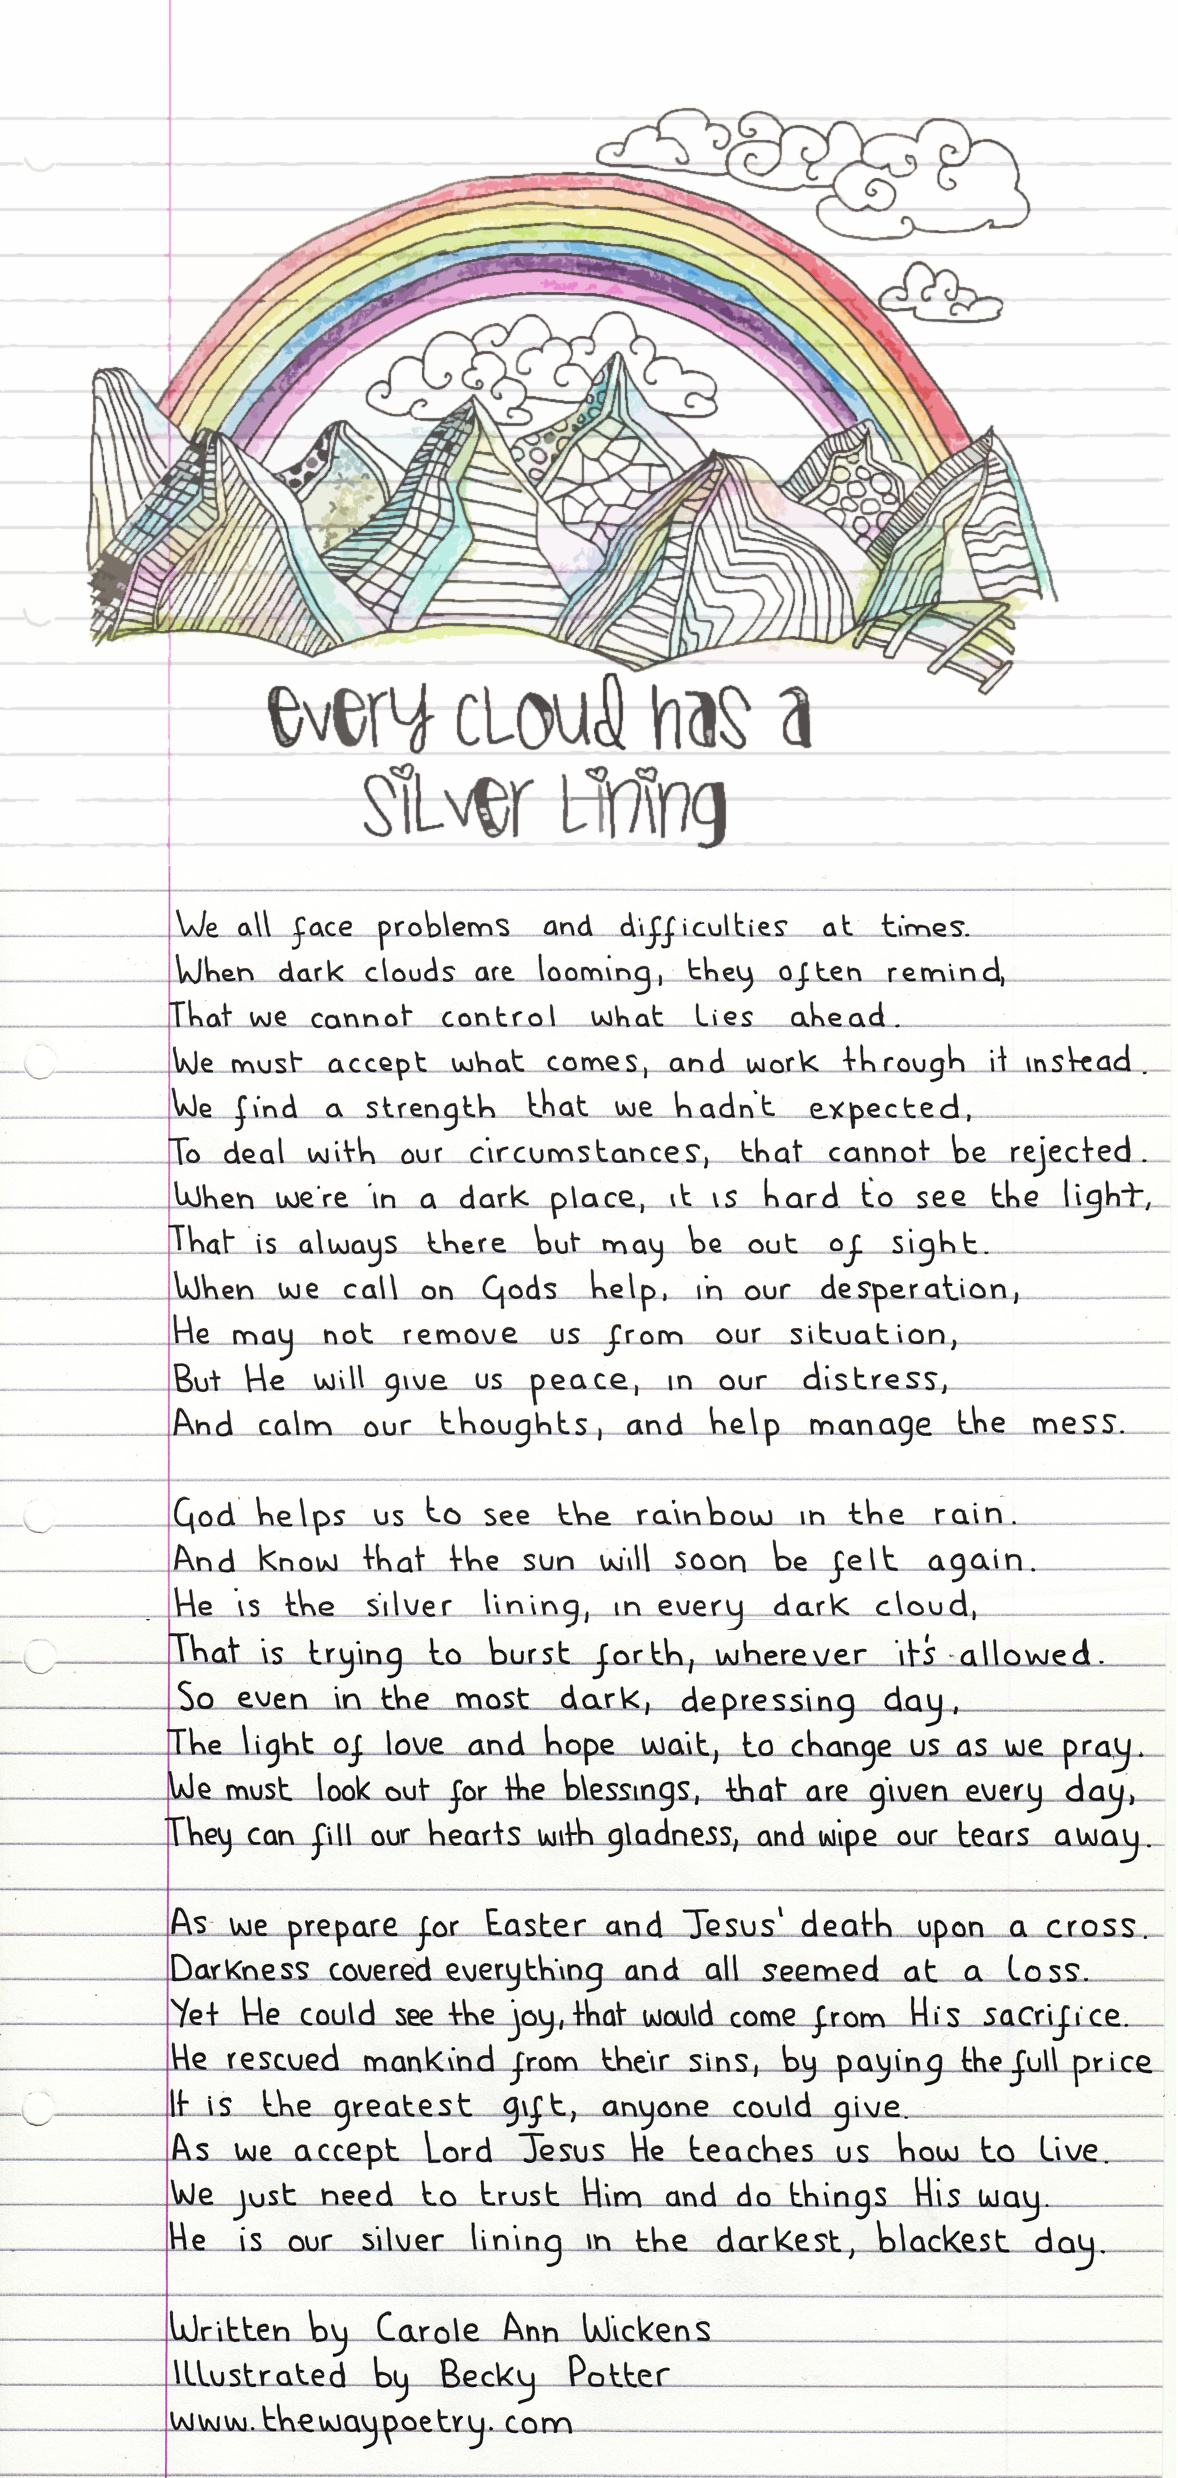 Every Cloud Has A Silver Lining by Carole Ann Wickens